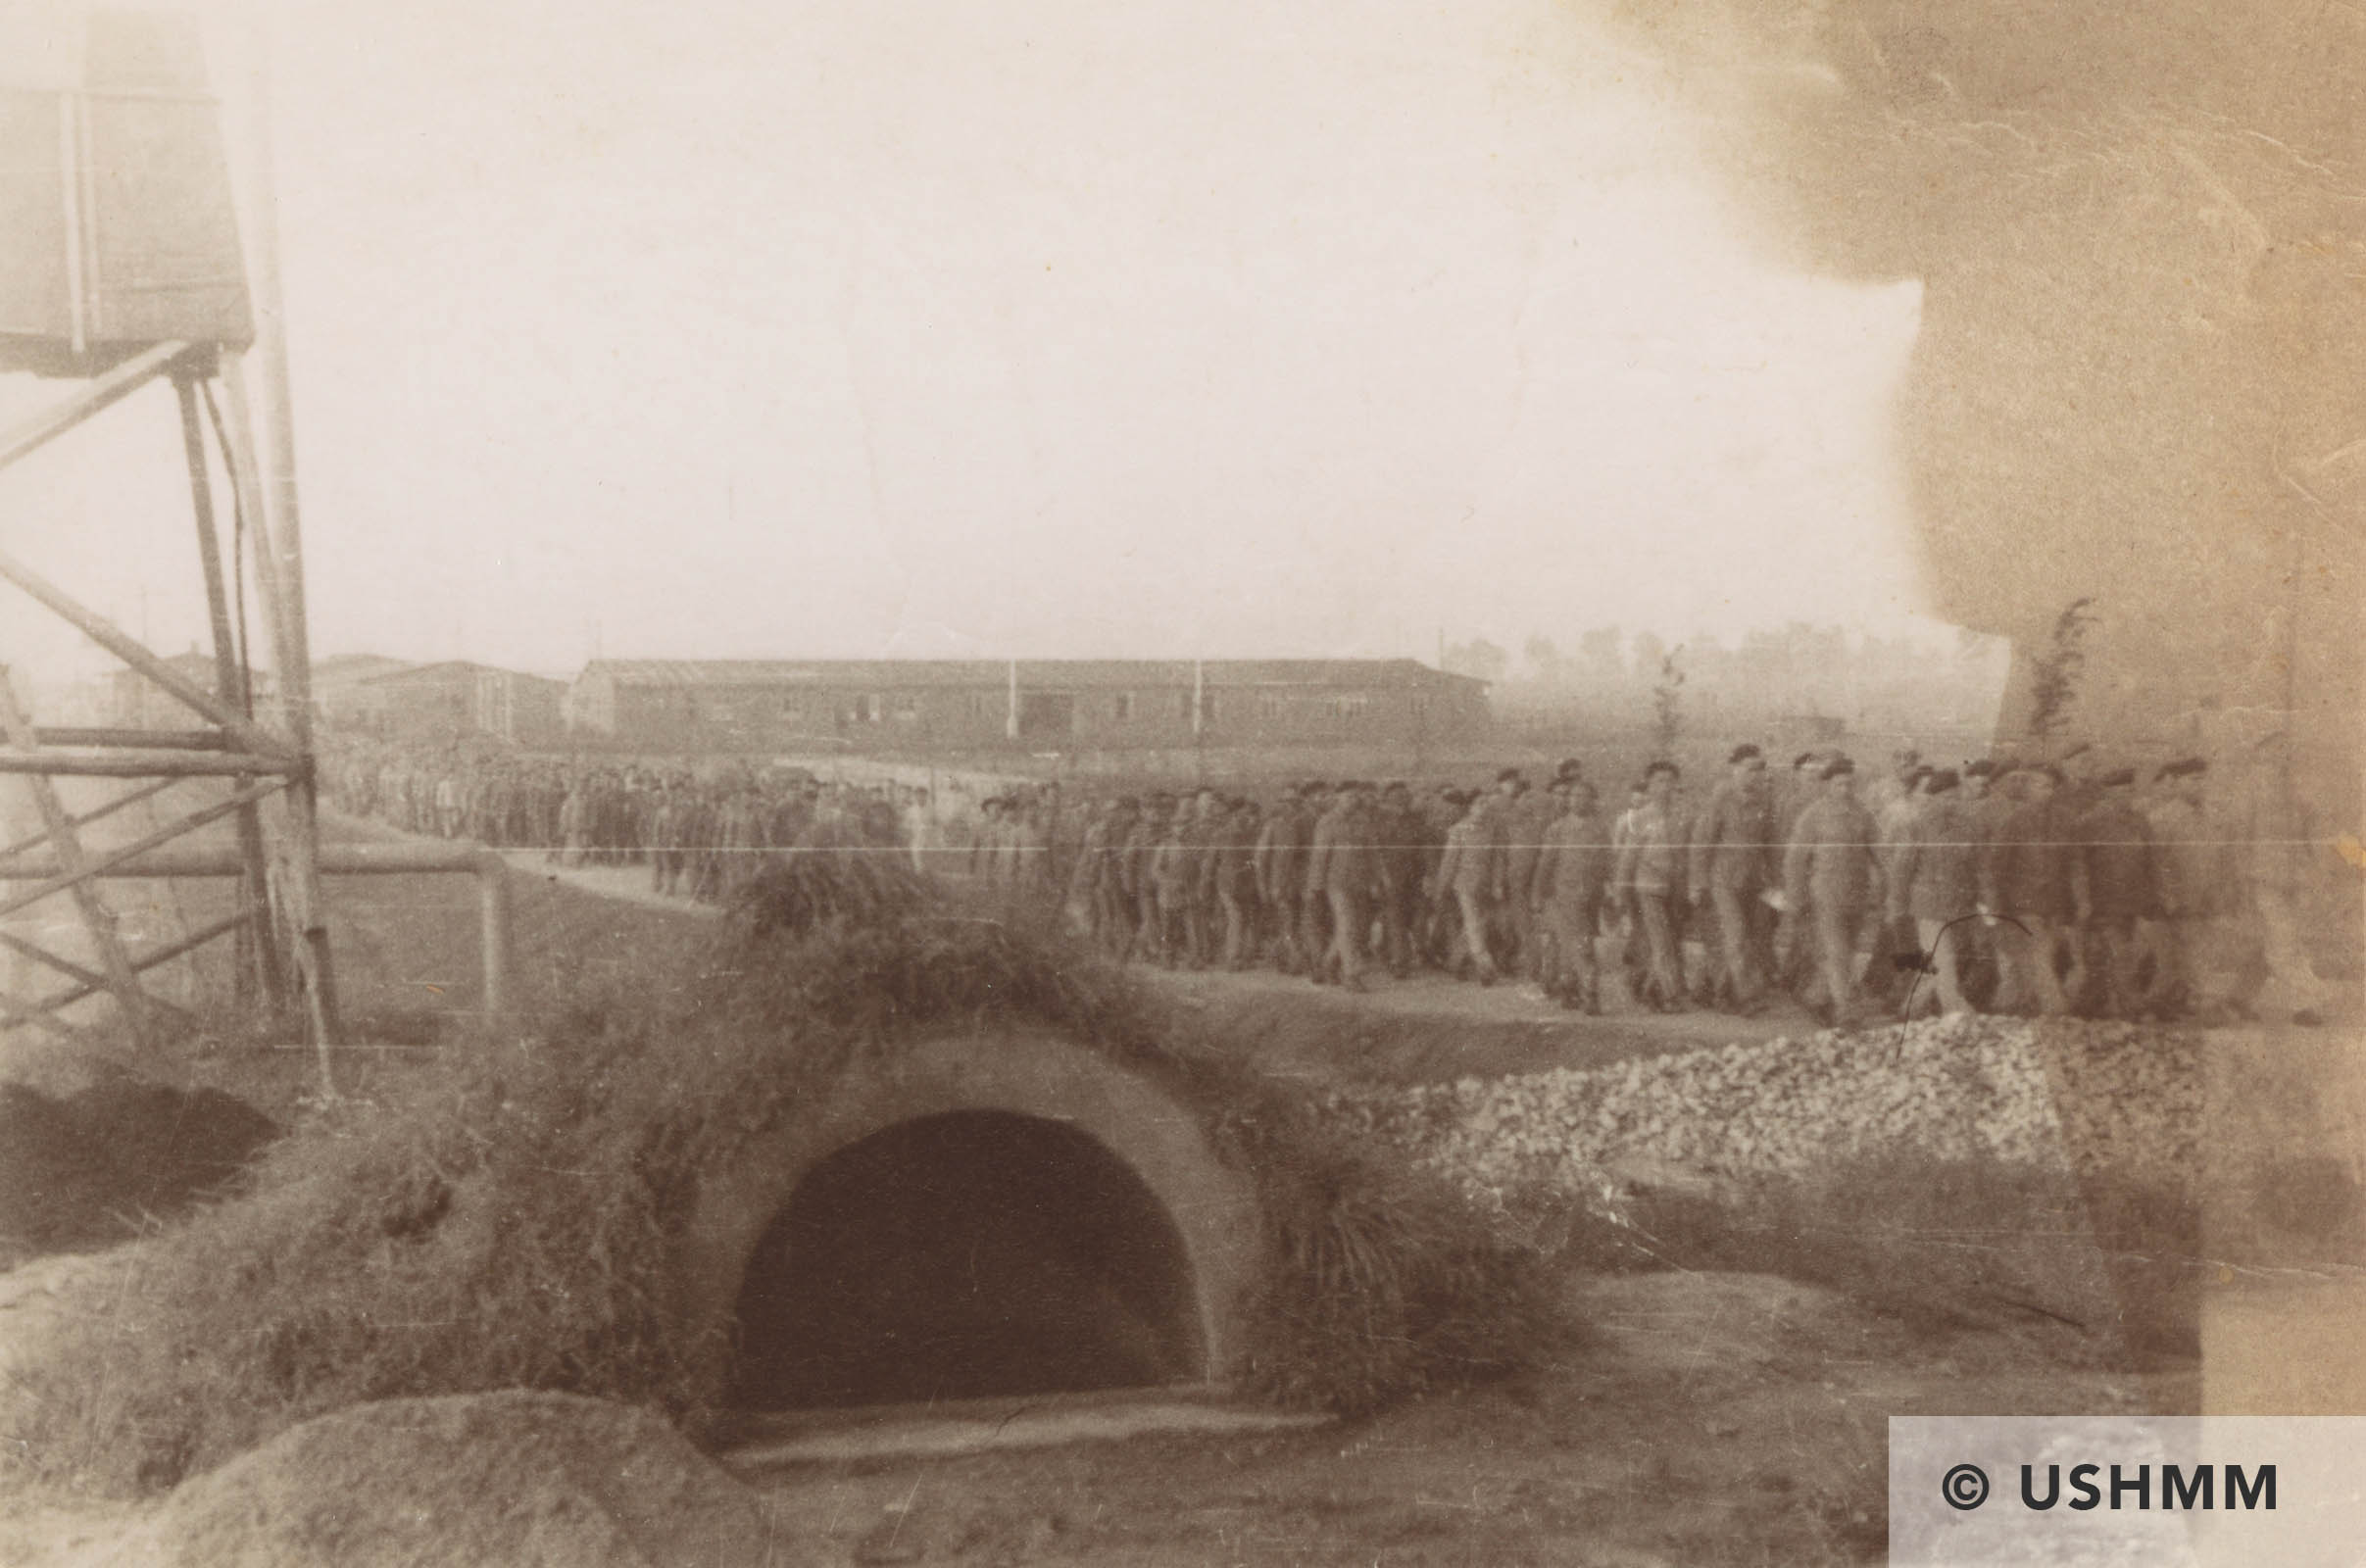 A column of prisoners walks from the Buna camp towards the I.G. Farben works. USHMM 57718